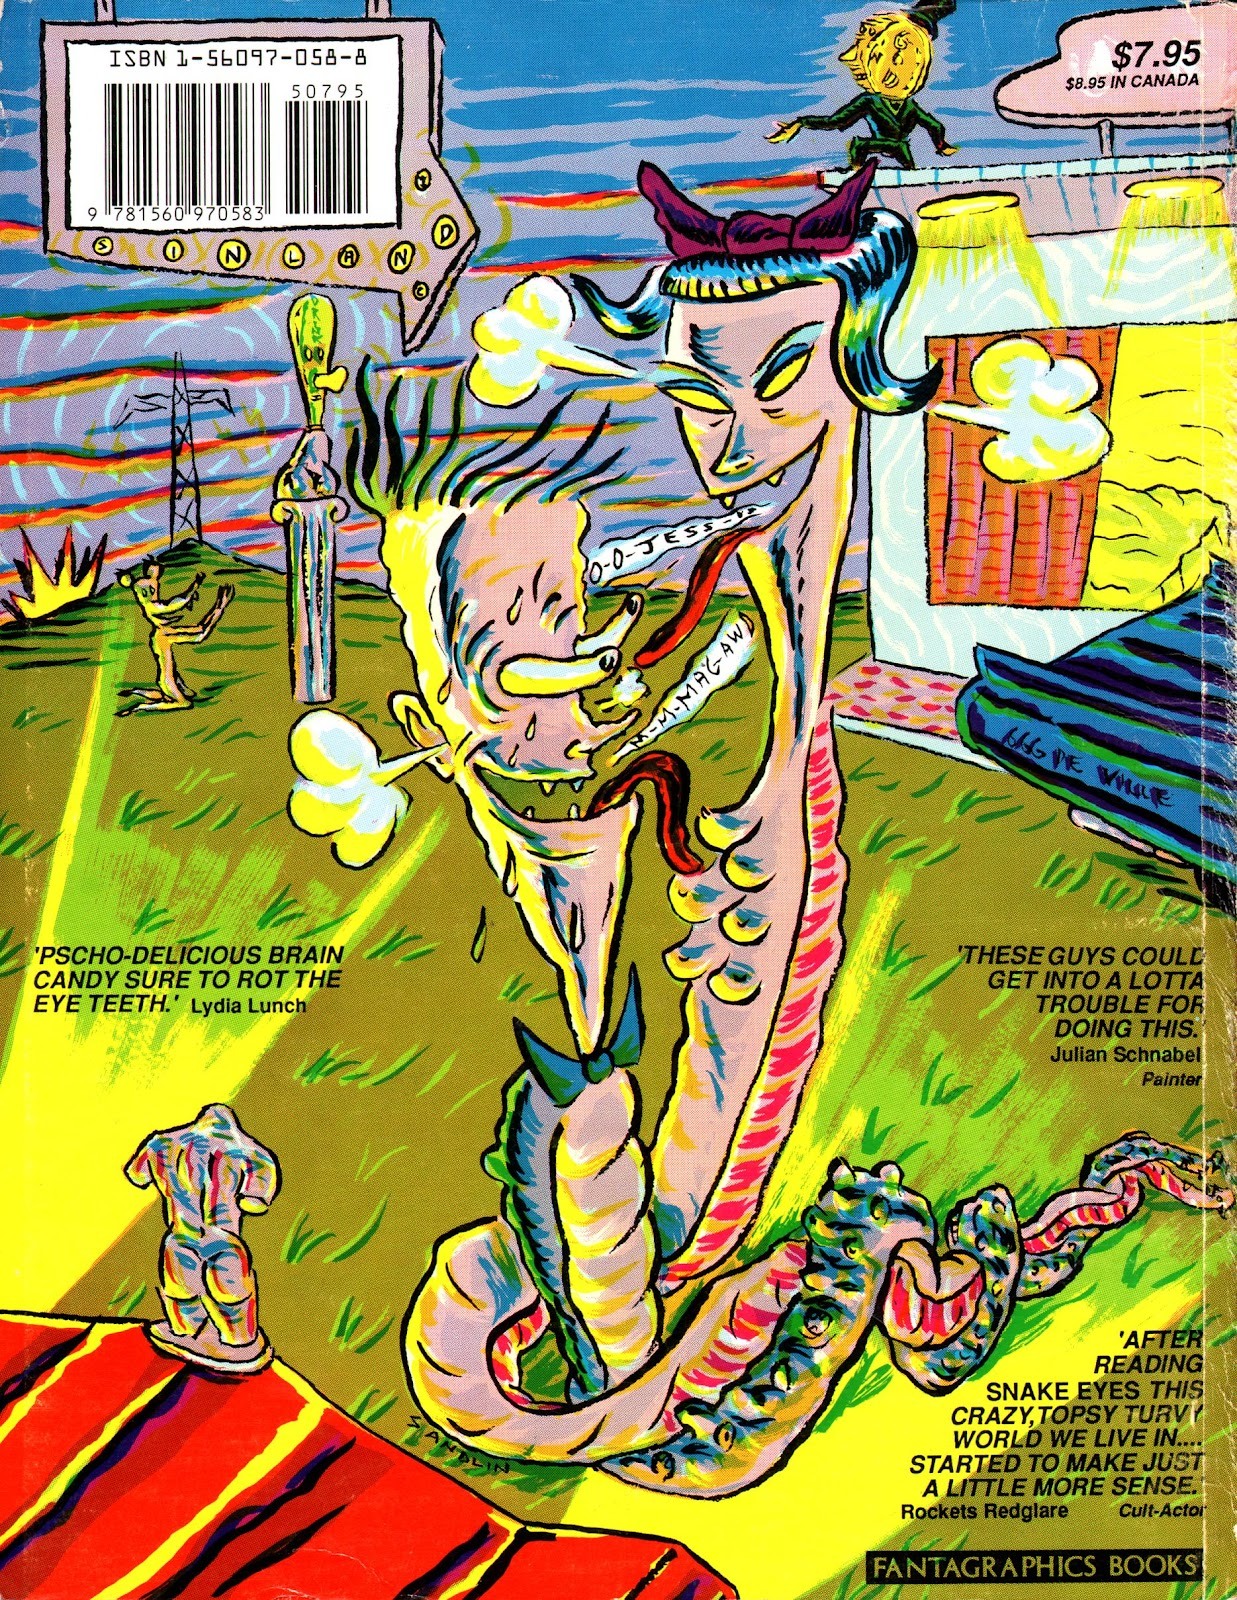 Read online Snake Eyes comic -  Issue #1 - 85